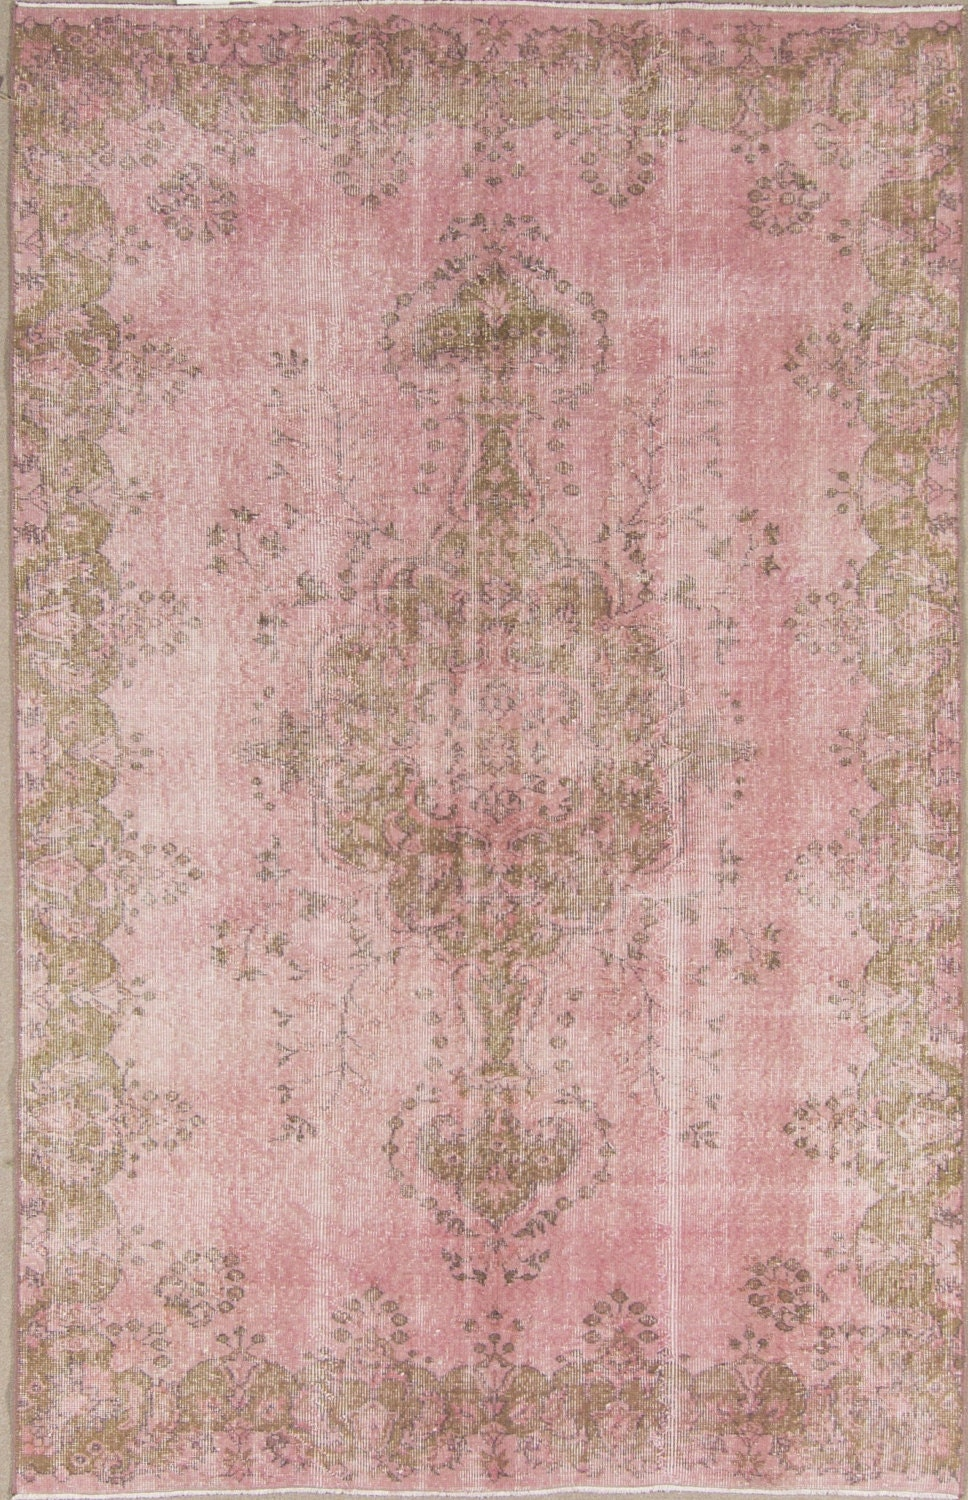 8 5 5 3 ft 259 162 cm vintage pink rosa overdyed handmade for 162 cm to feet